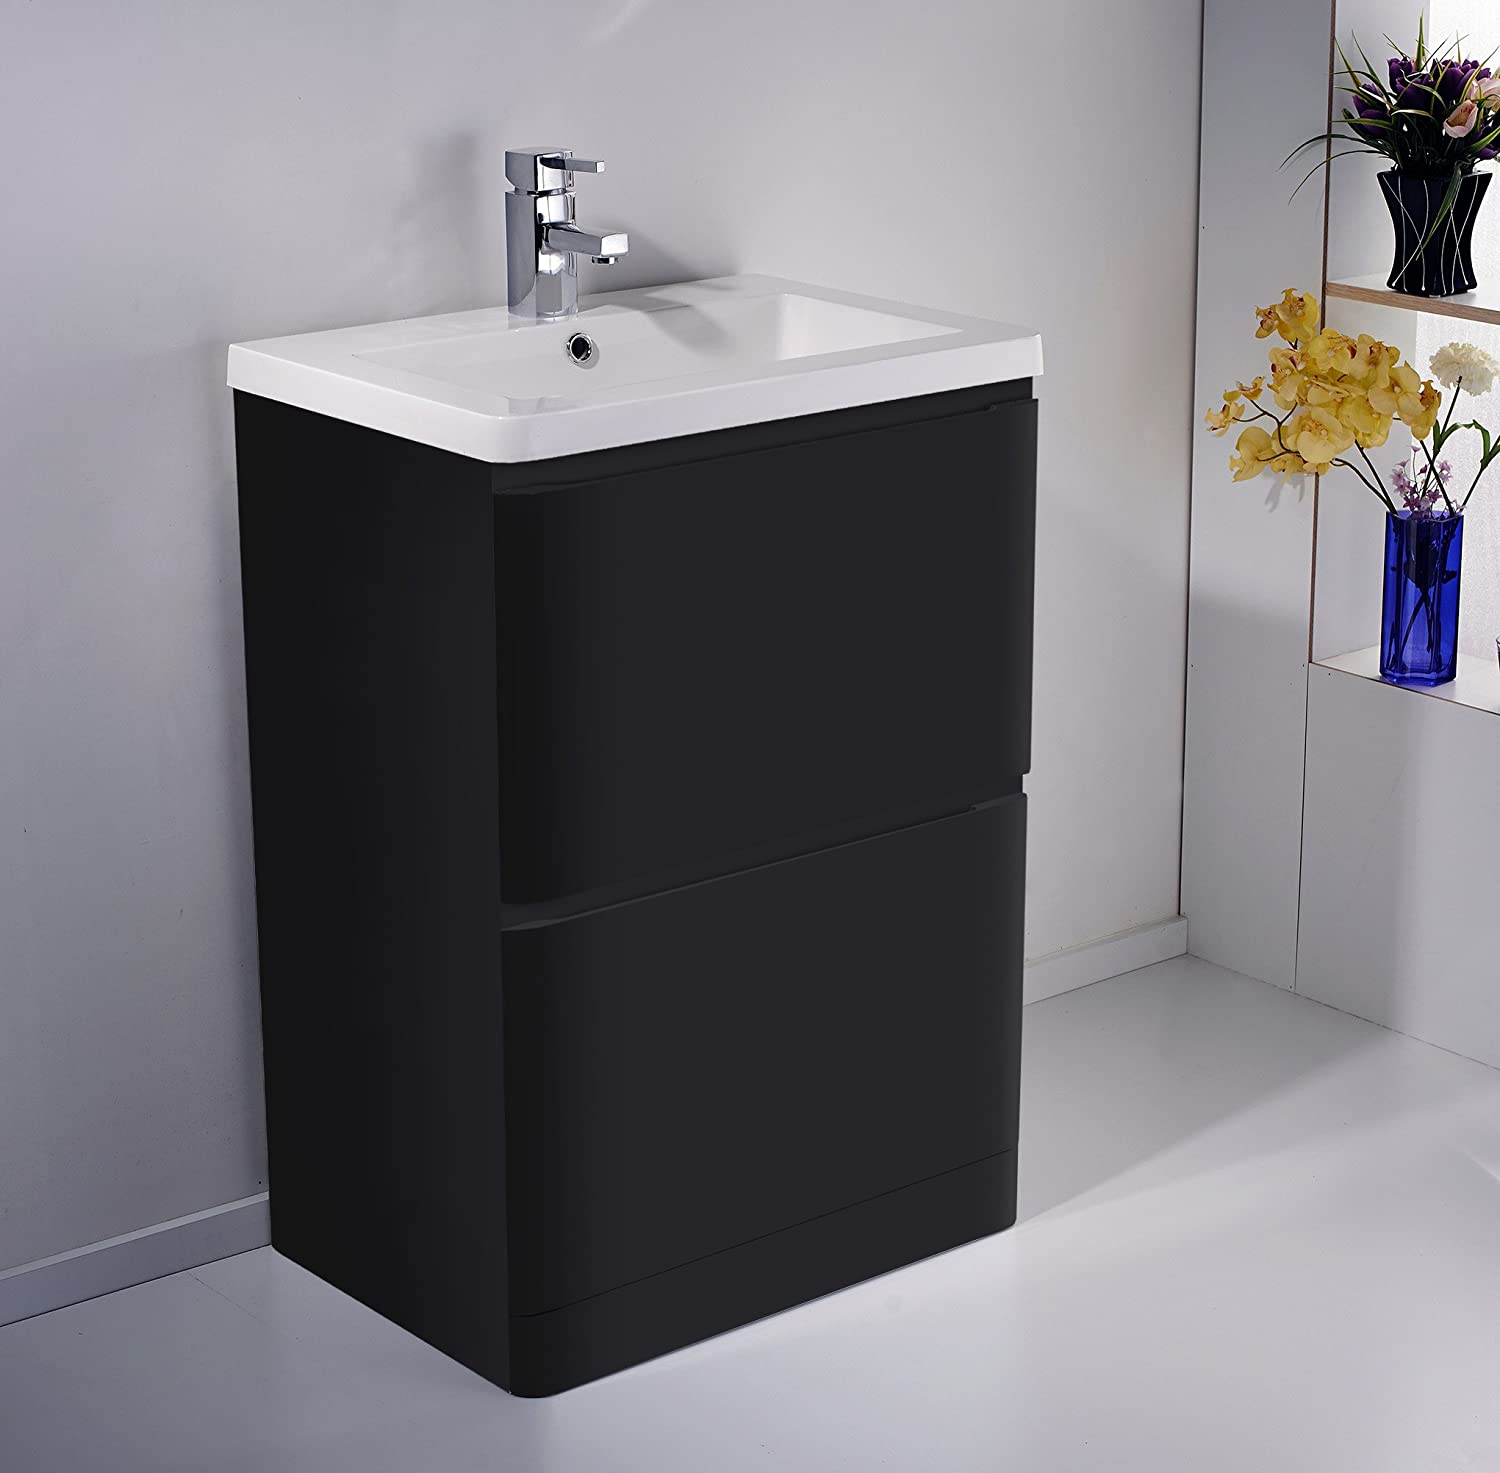 floor standing mdf black gloss bathroom vanity unit 2 drawer amazoncouk kitchen home